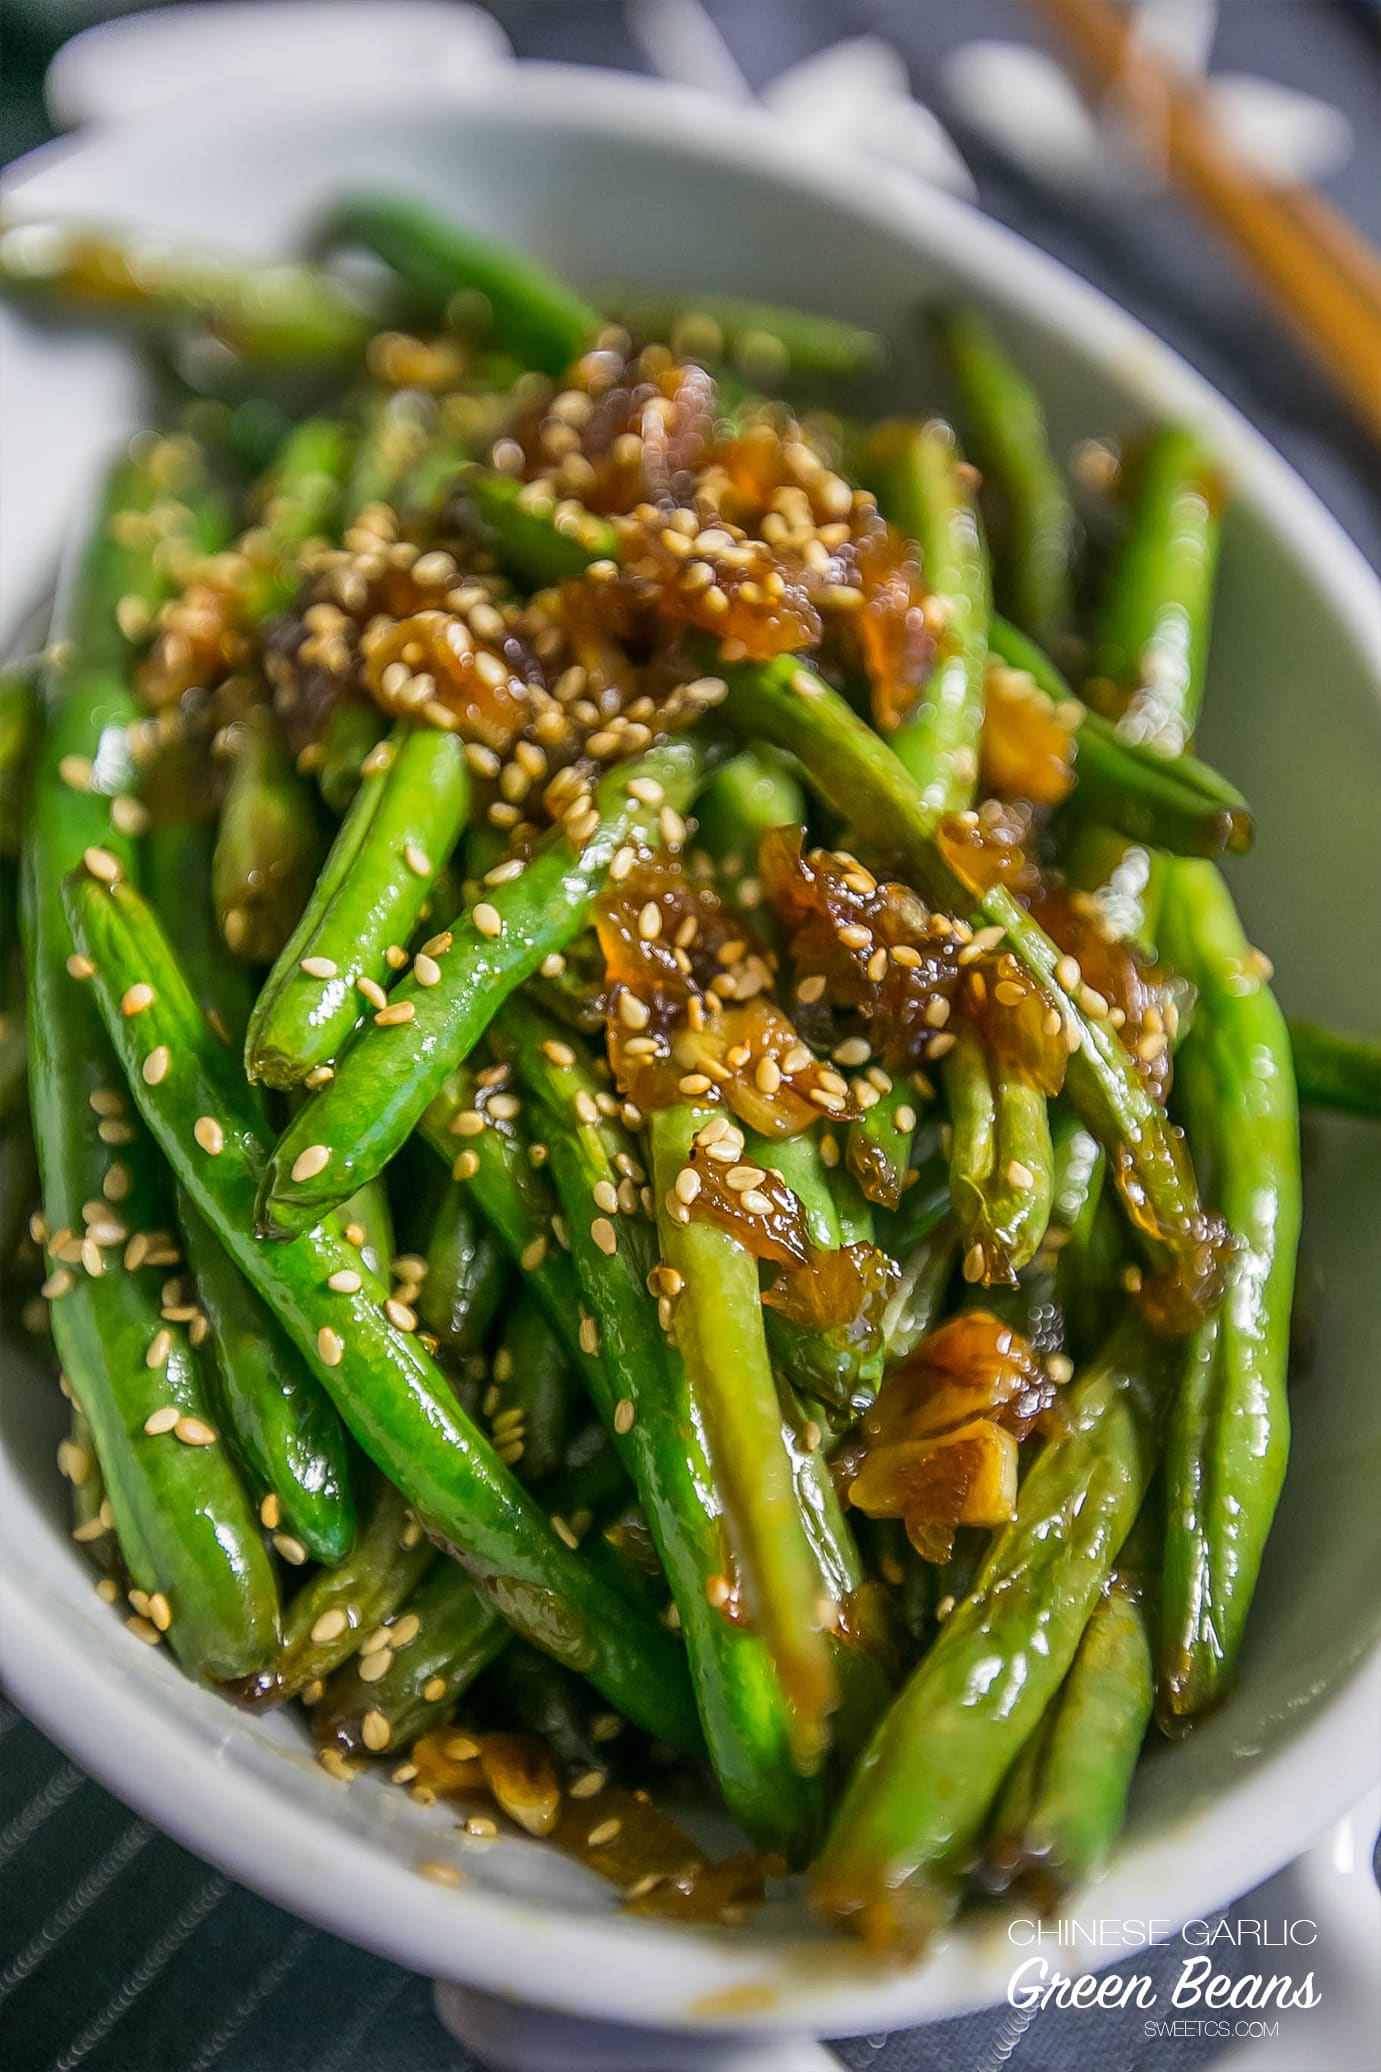 ... and tastiest way ot make green beans - garlic chinese green beans